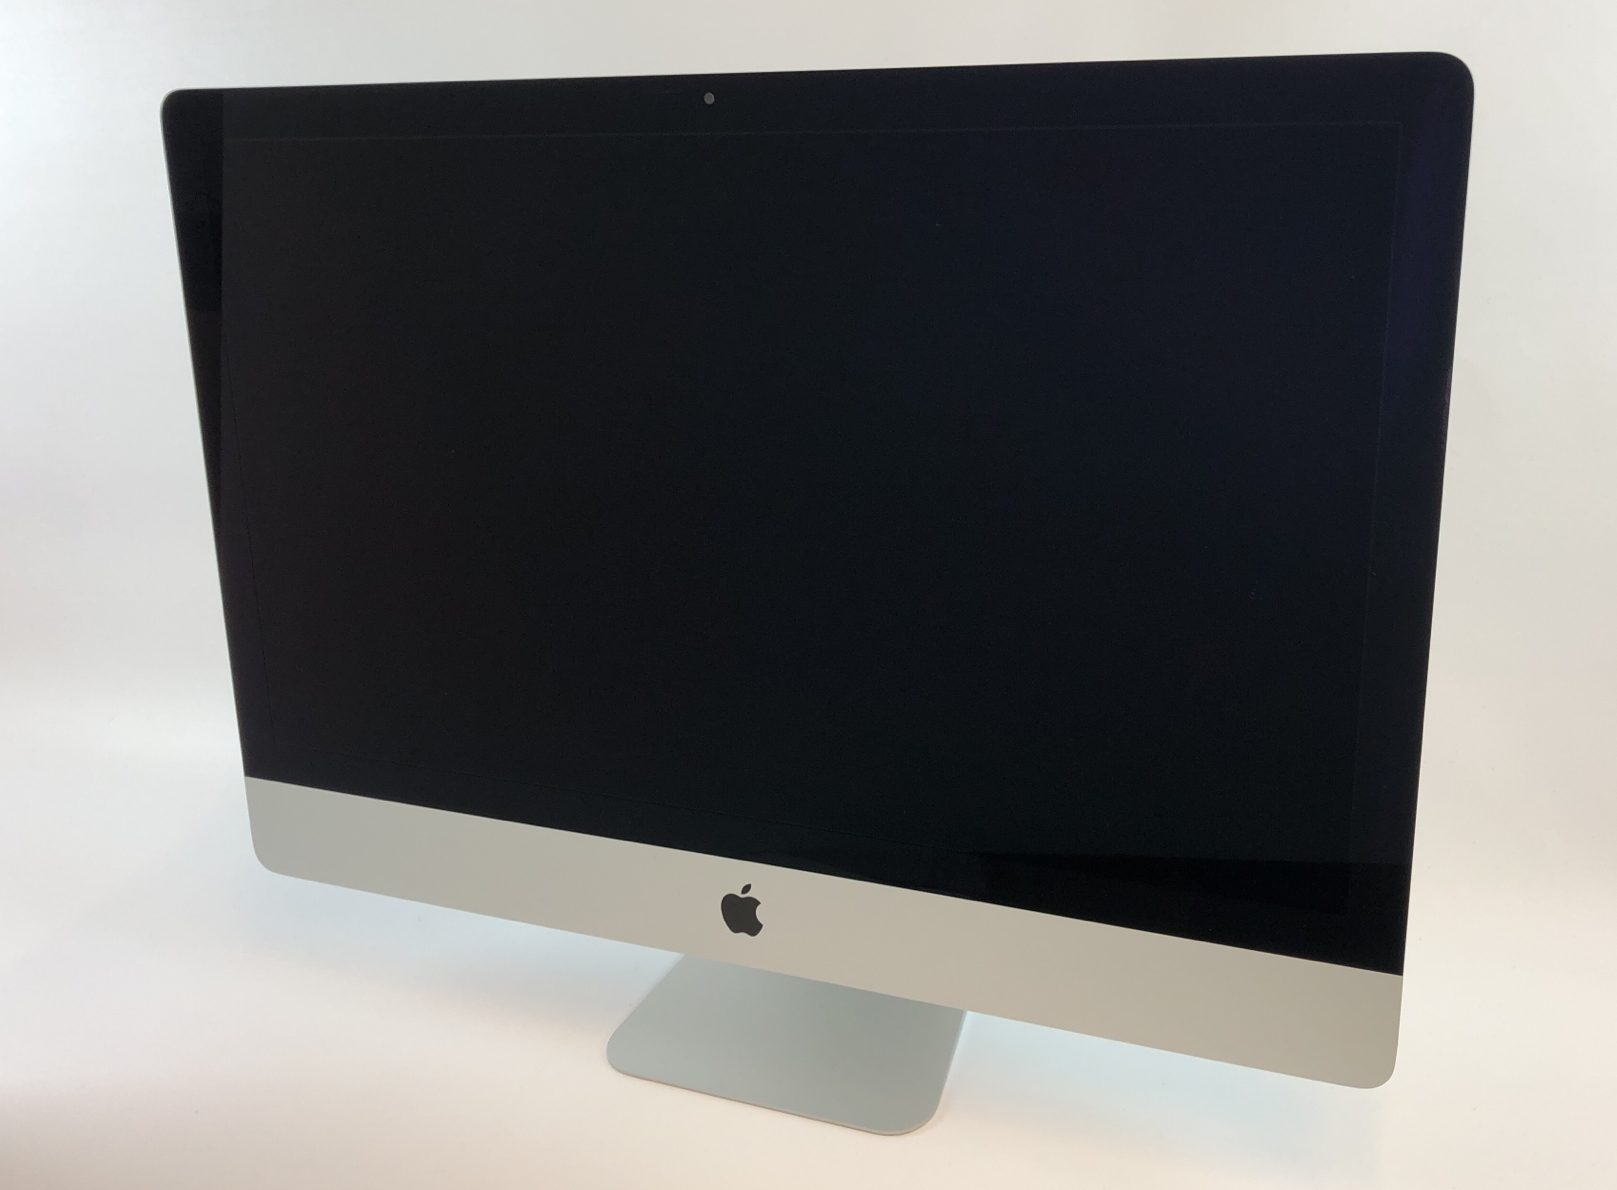 "iMac 27"" Retina 5K Late 2015 (Intel Quad-Core i7 4.0 GHz 24 GB RAM 256 GB SSD), Intel Quad-Core i7 4.0 GHz, 24 GB RAM, 256 GB SSD, Bild 1"